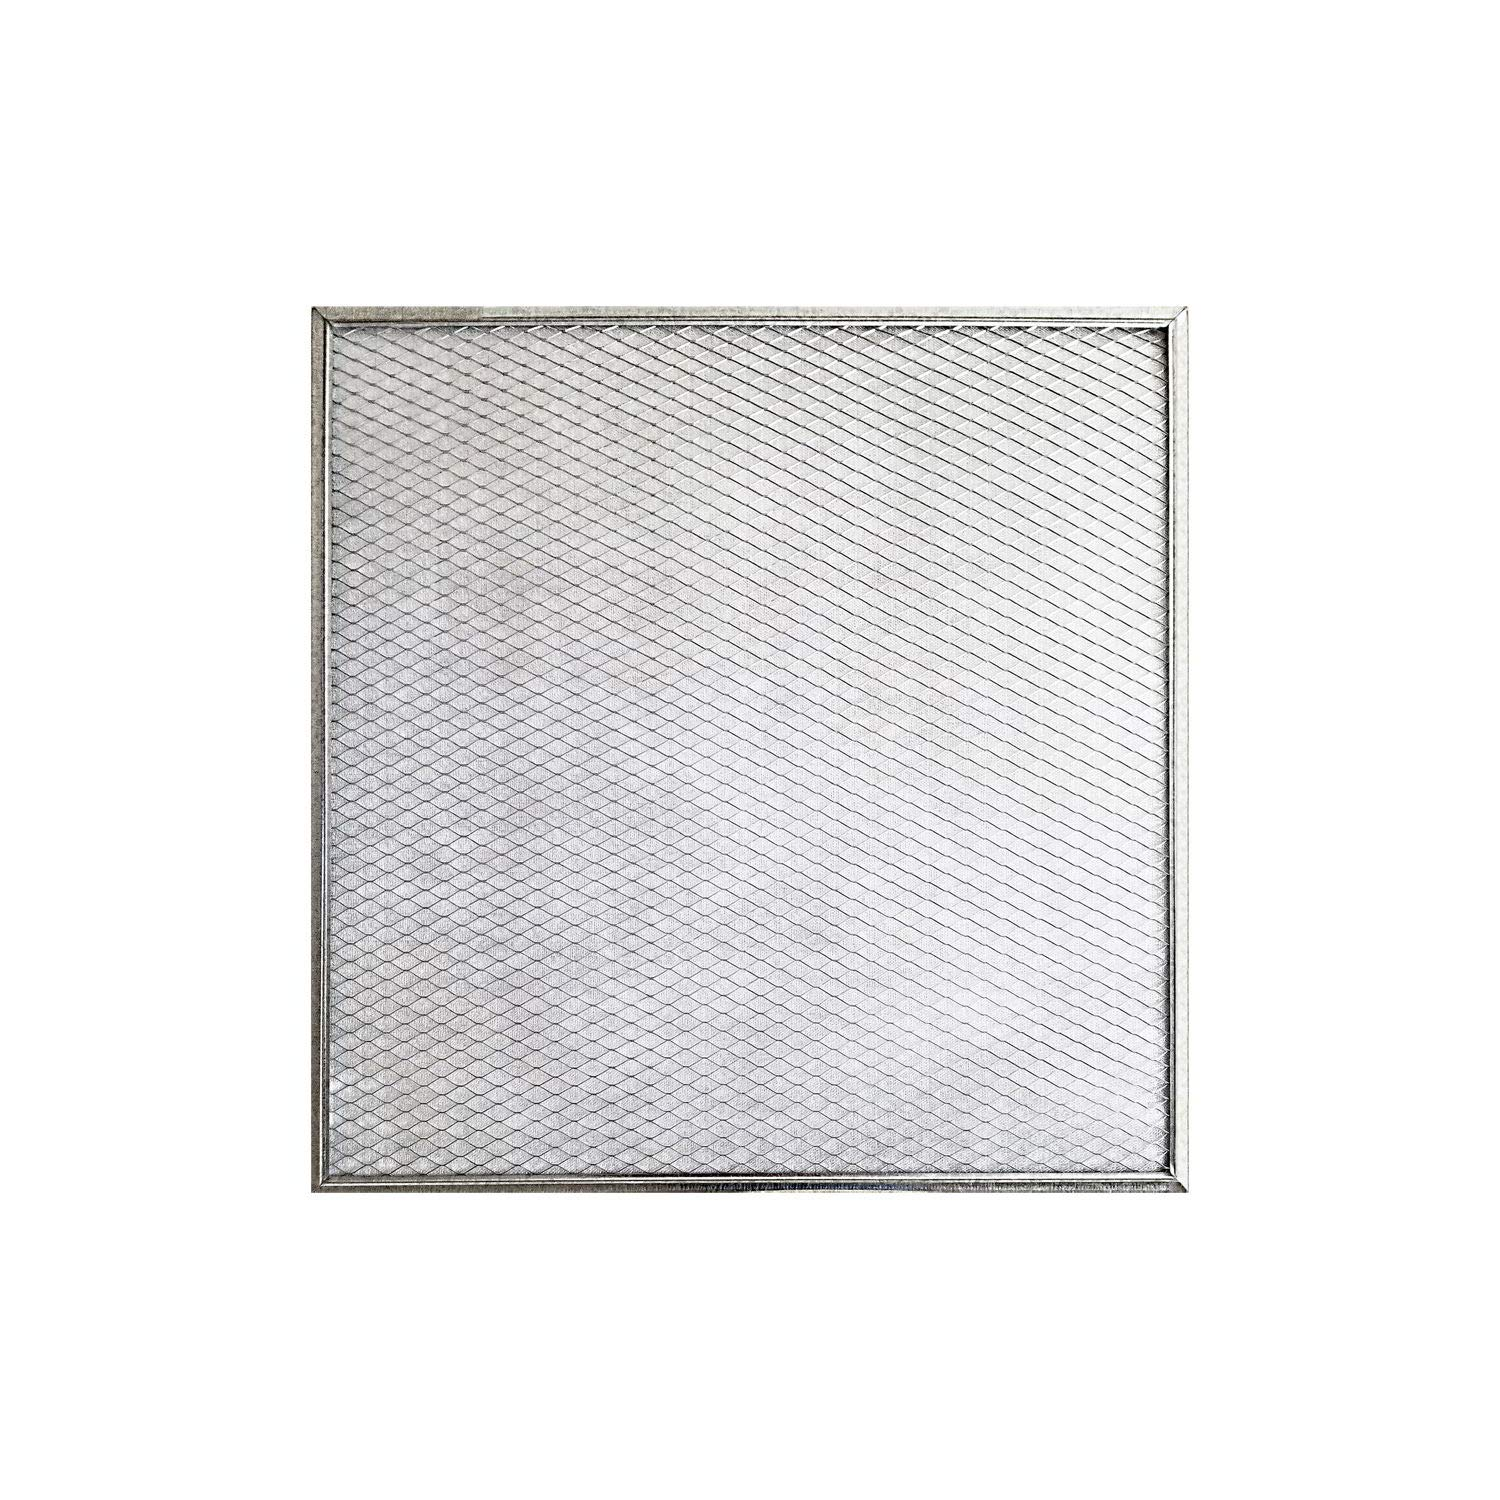 Kilowatts Energy Center 15x24x1 Lifetime Air Filter - Electrostatic, Permanent, Washable - for Furnace or A/C - Never Buy Another Filter.